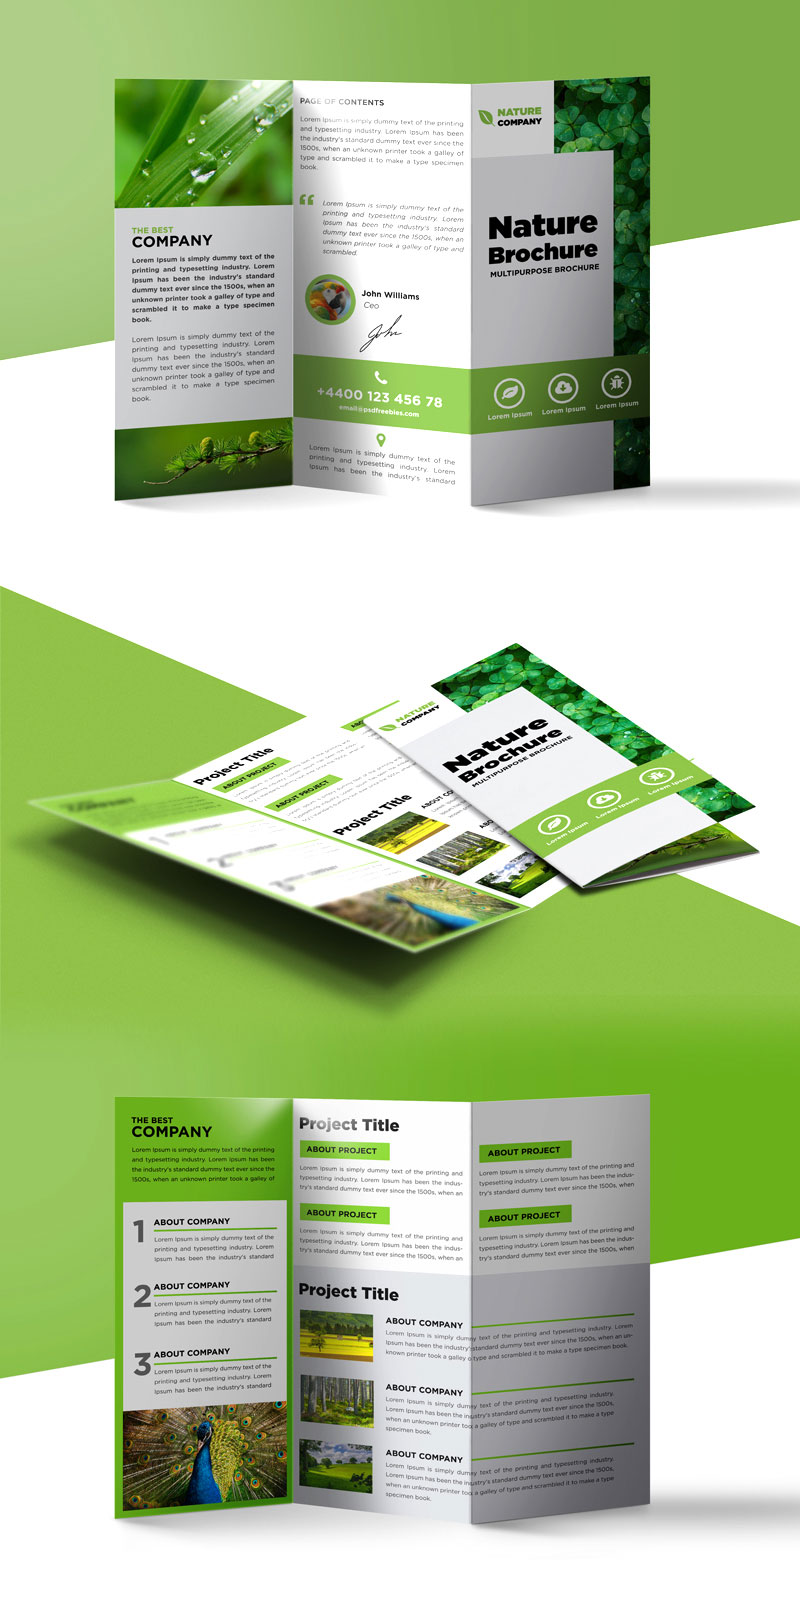 Nature tri fold brochure template free psd for Tri fold business brochure template